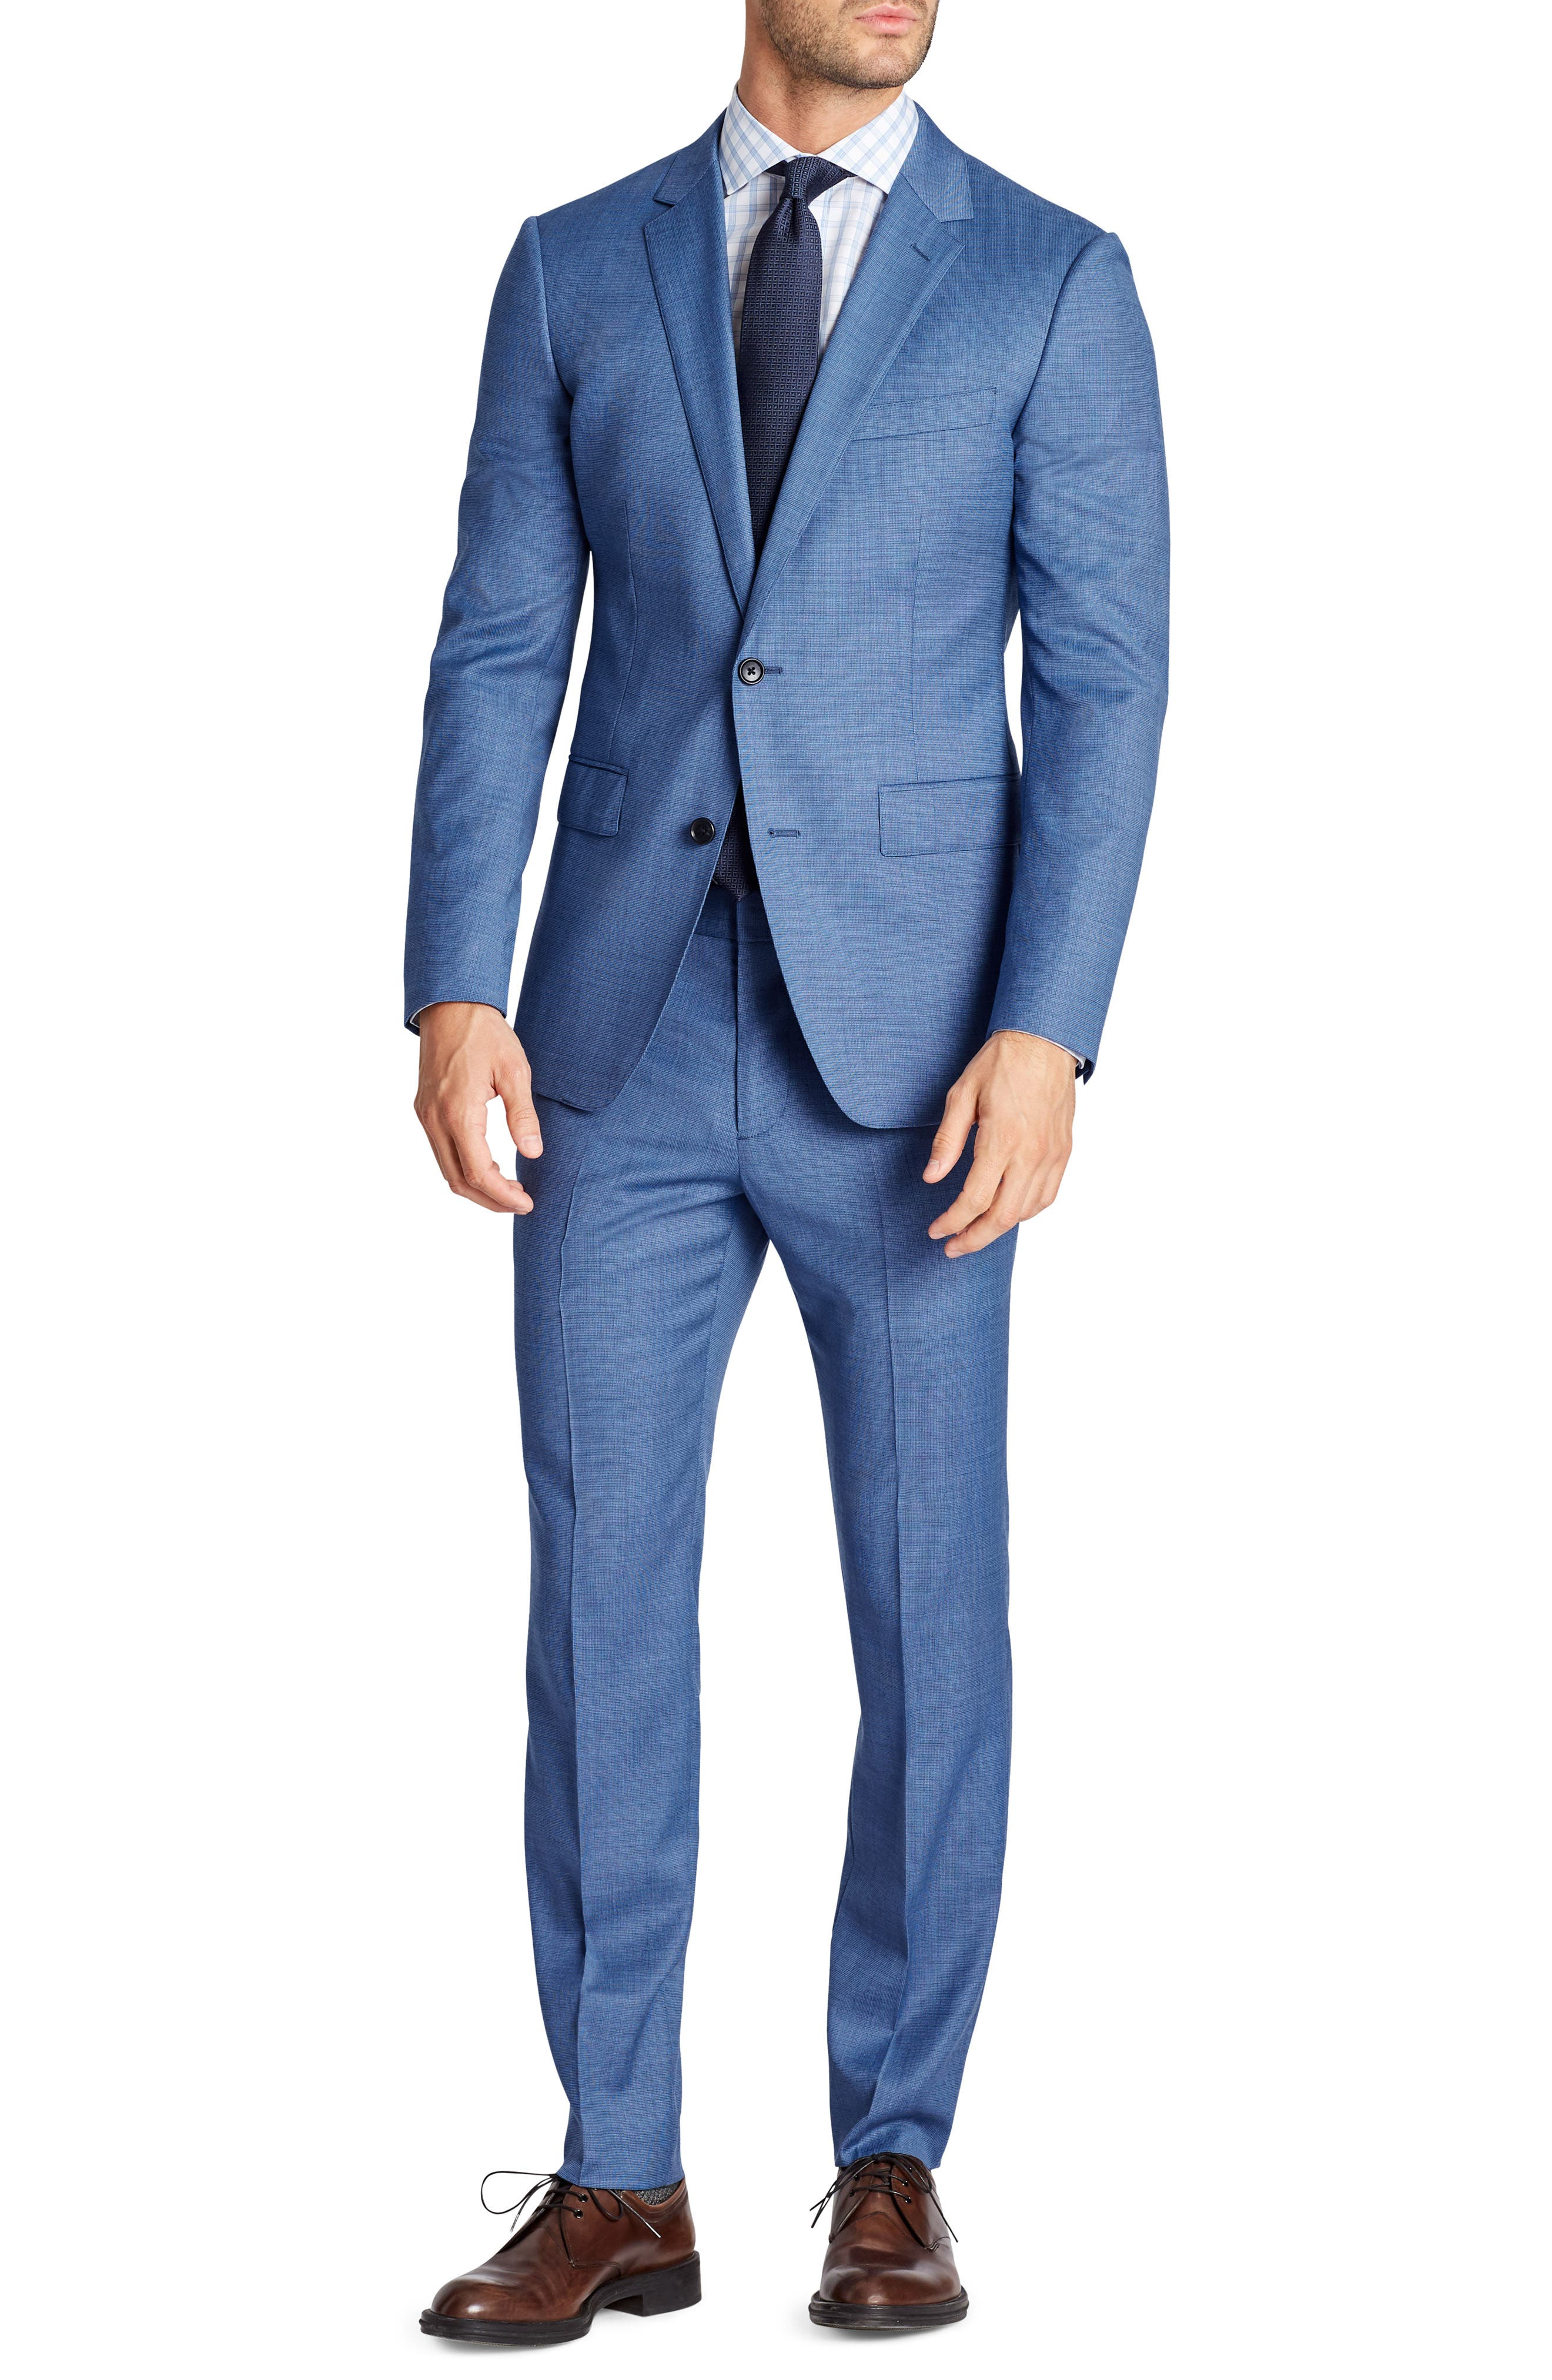 Jetsetter Trim Fit Stretch Solid Wool Suit Jacket,                             Alternate thumbnail 8, color,                             BRIGHTER BLUE